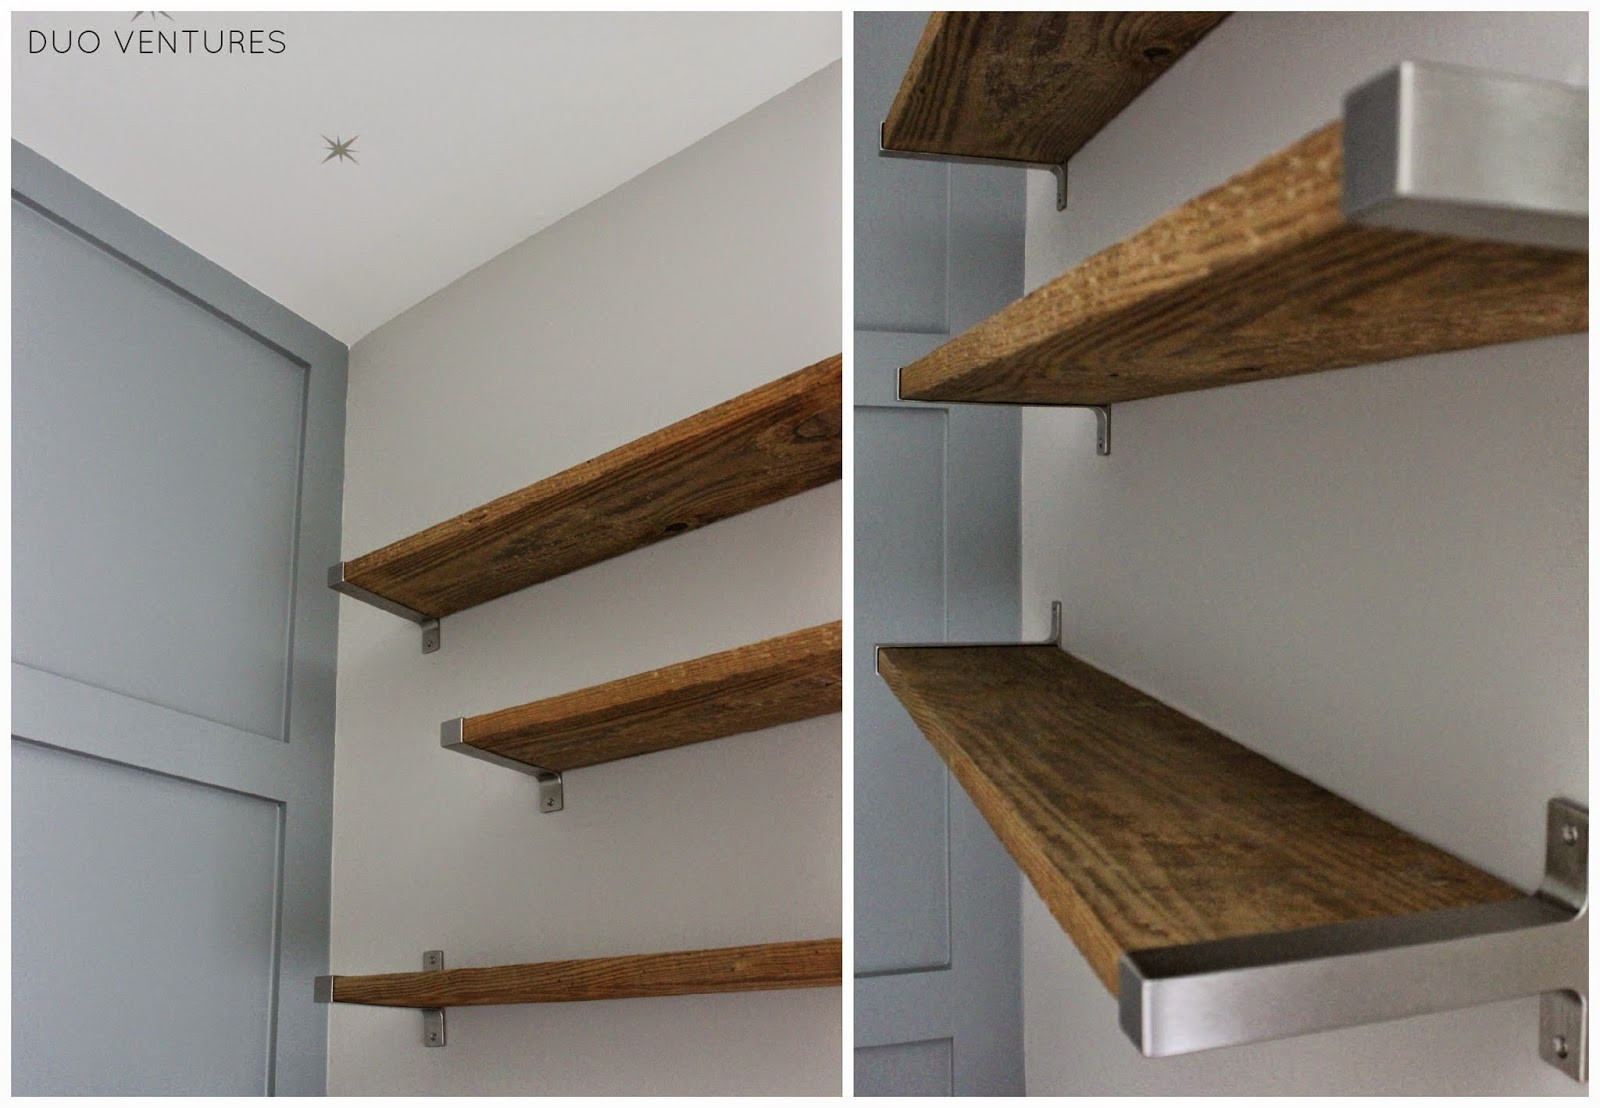 Best ideas about DIY Barn Wood Shelves . Save or Pin Duo Ventures The Nursery DIY Reclaimed Barnwood Shelves Now.